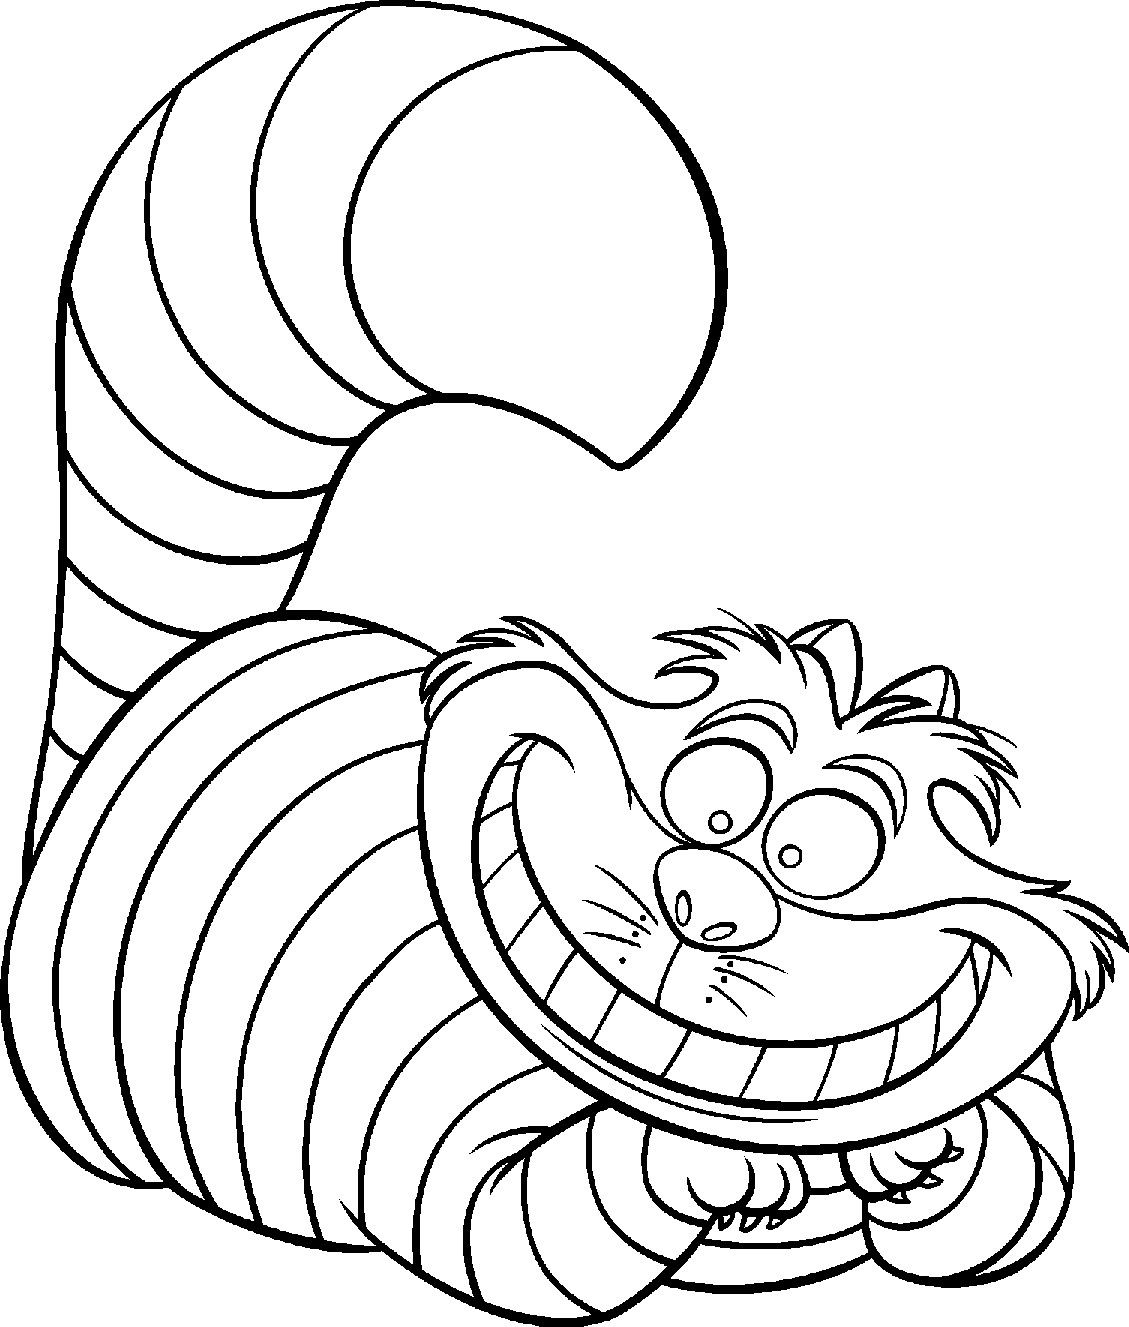 coloring pictures disney disney coloring pages best coloring pages for kids pictures disney coloring